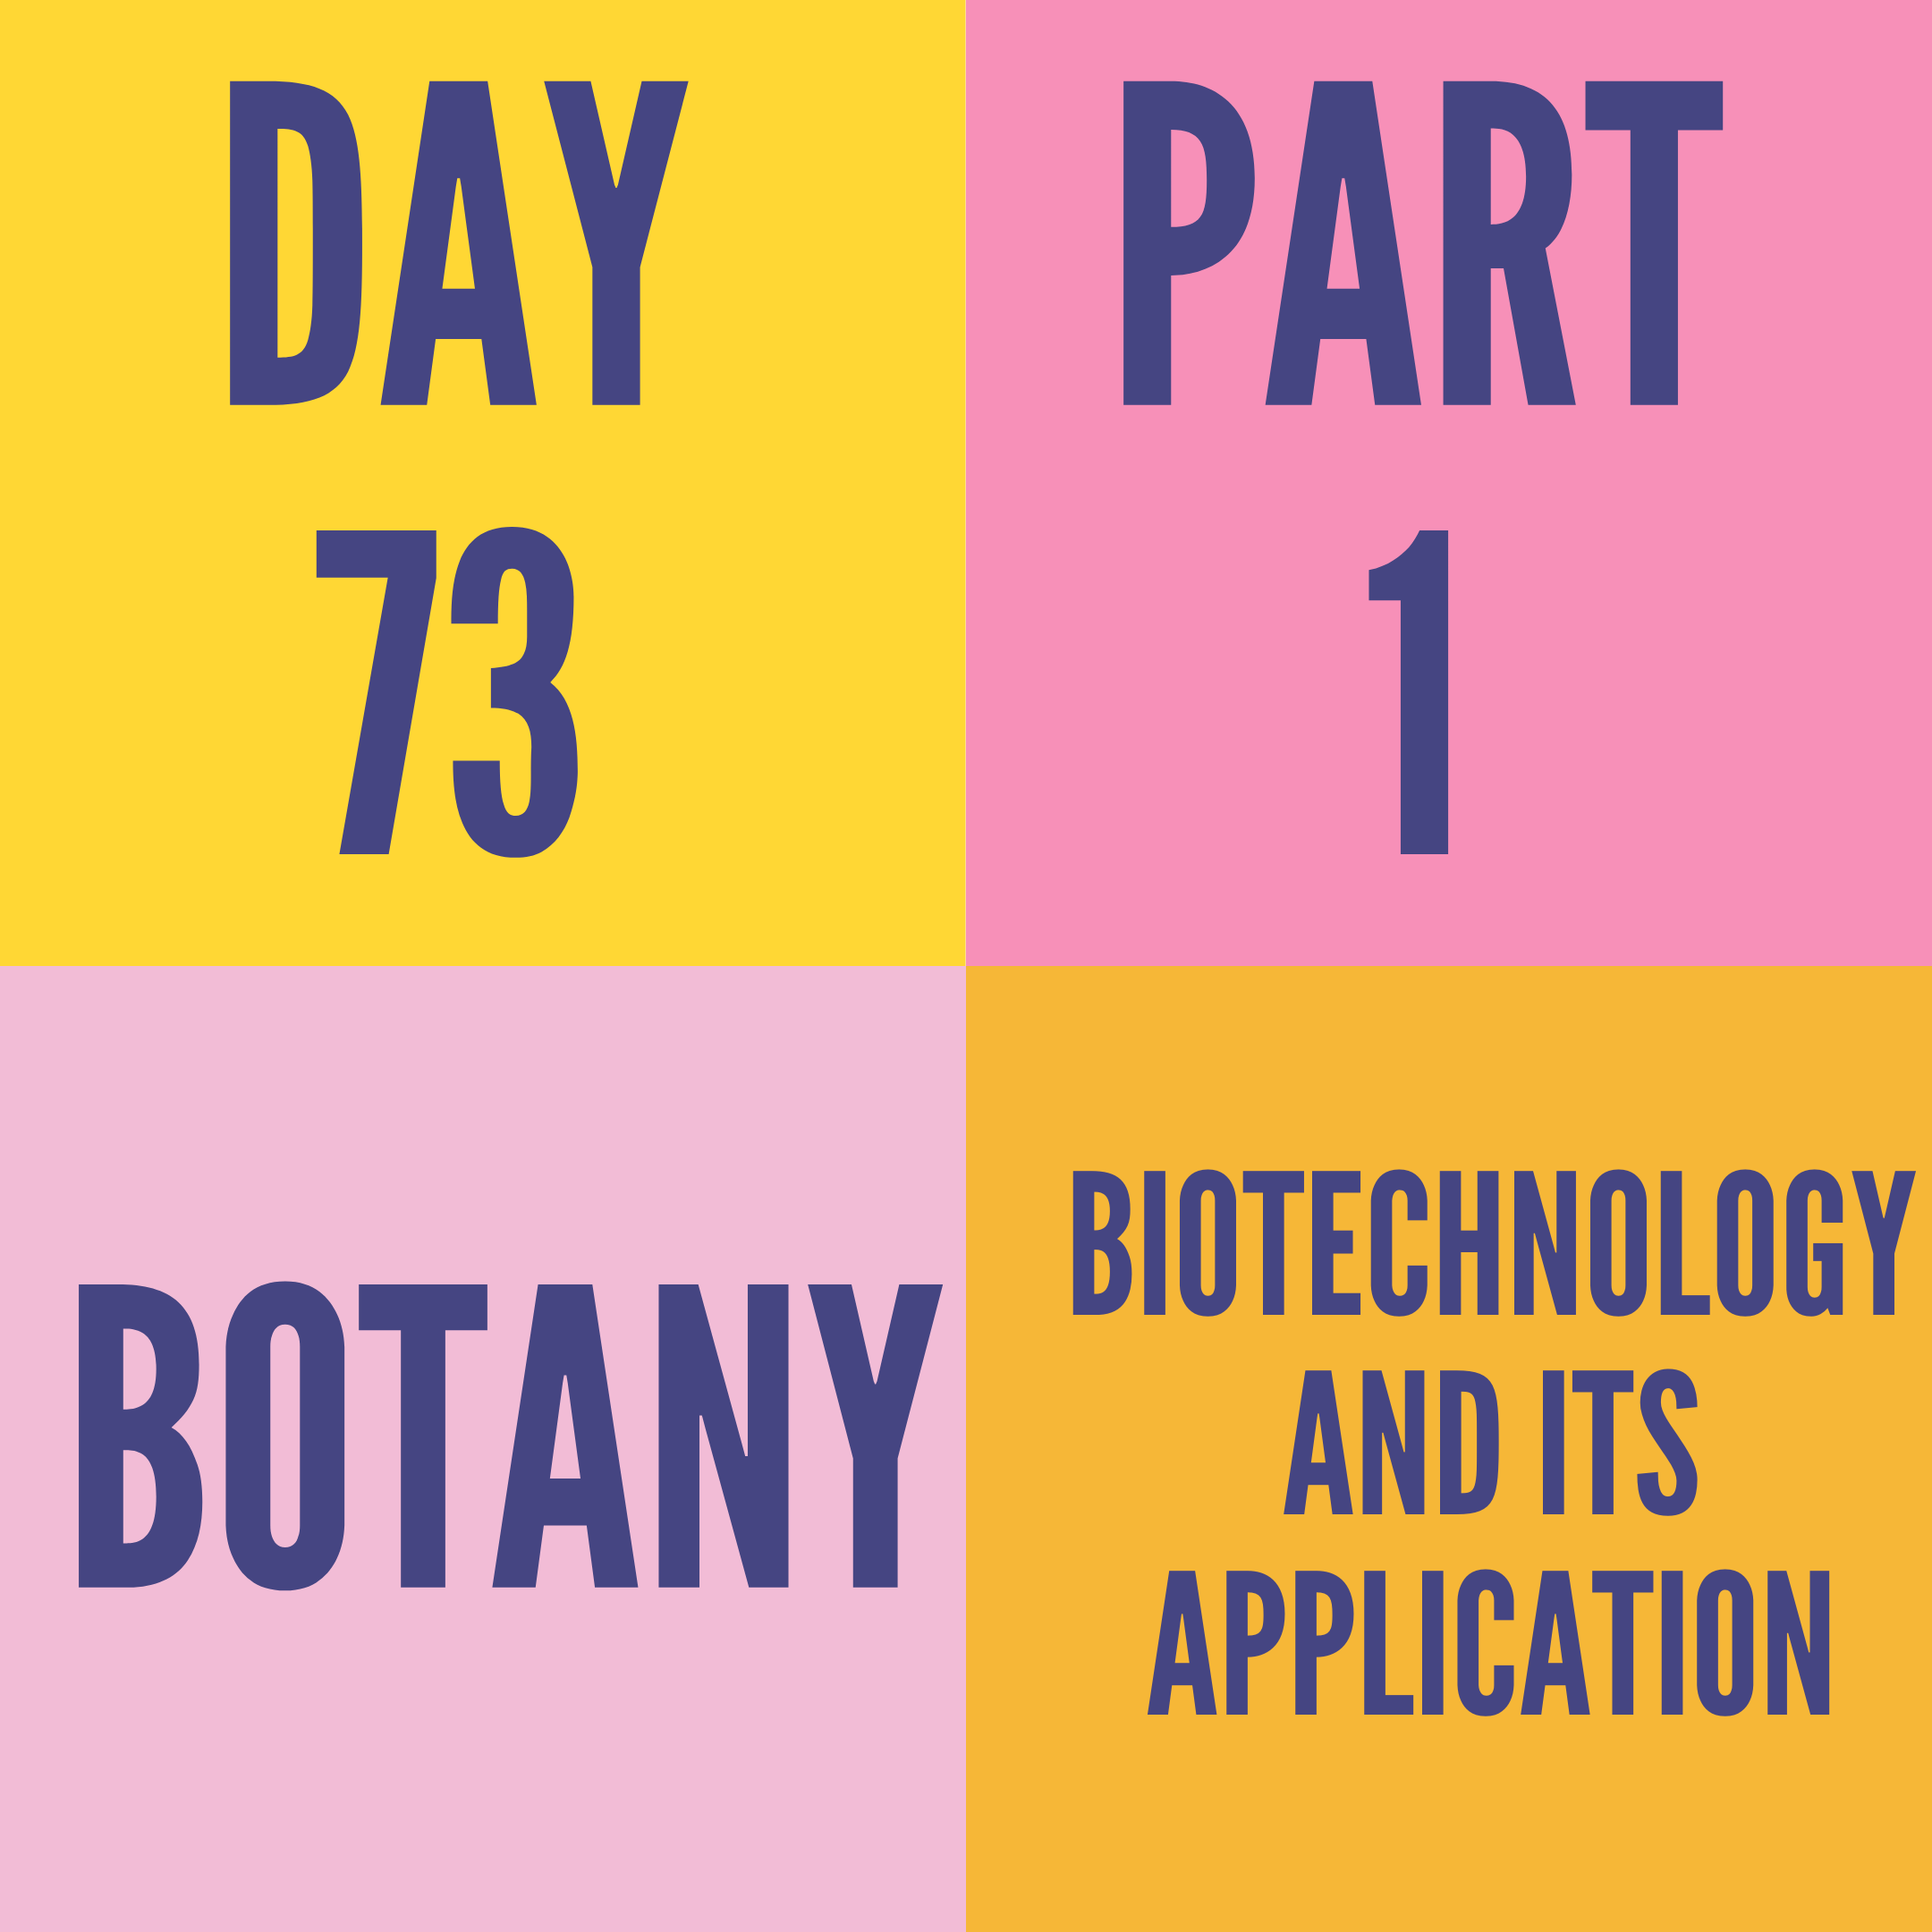 DAY-73 PART-1 BIOTECHNOLOGY AND ITS APPLICATION